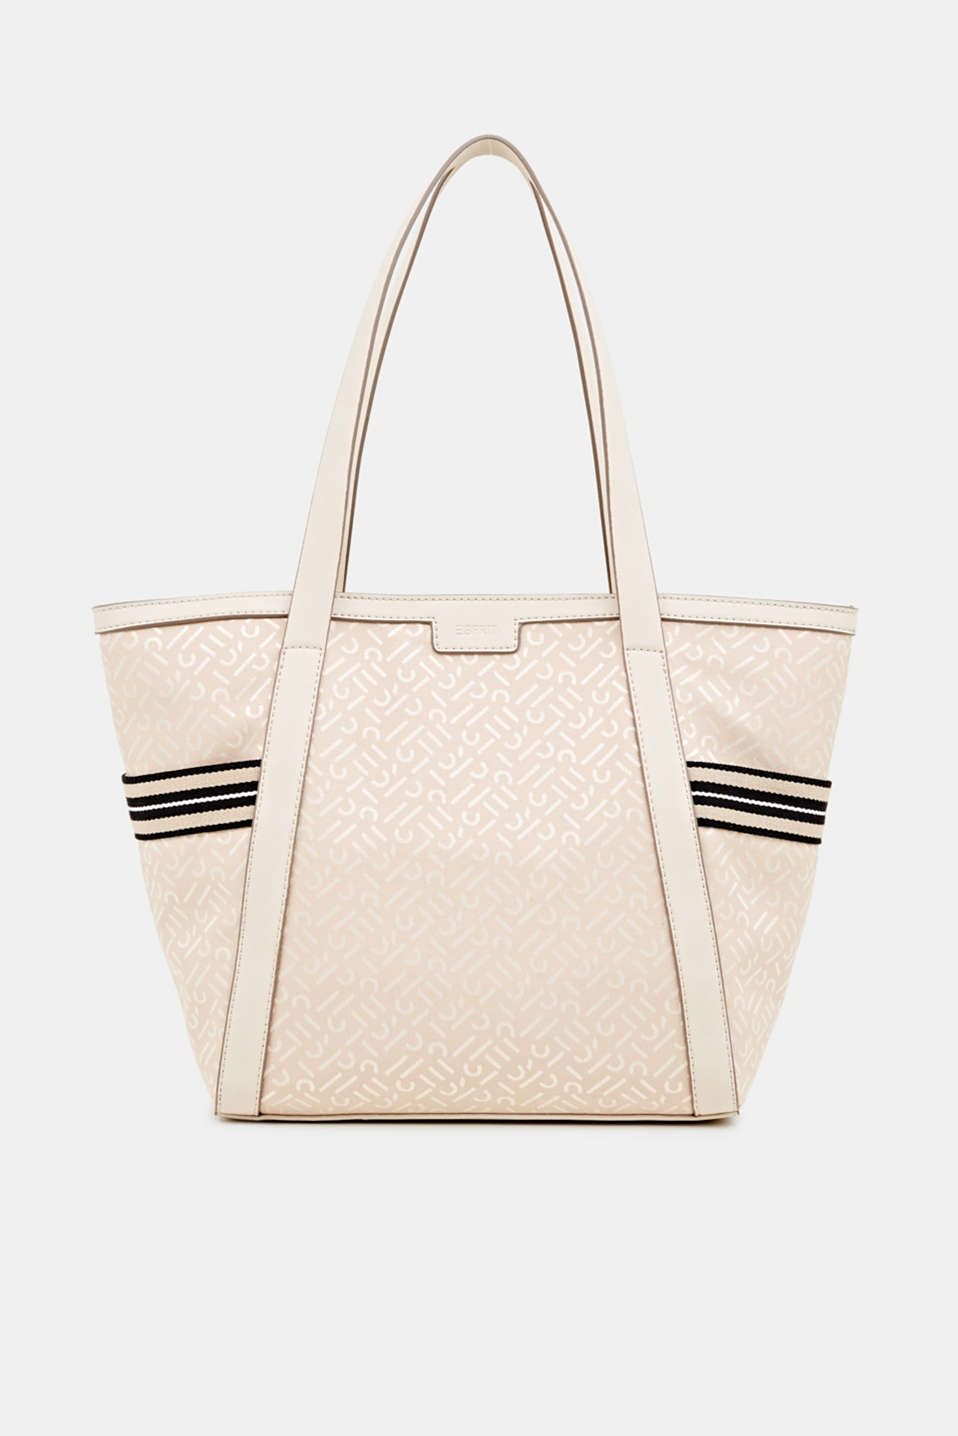 Esprit - Monogram tote bag in a mix of materials